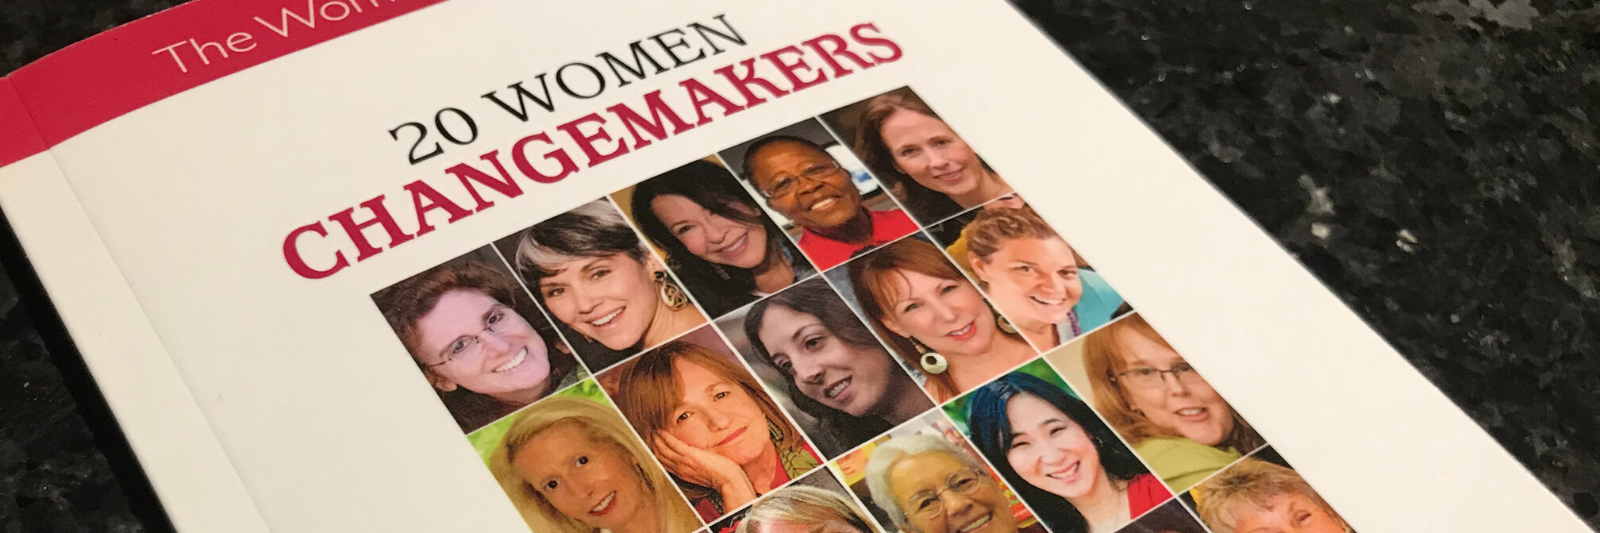 20 Women Changemakers: Taking Action Around the World book by The Women's Eye